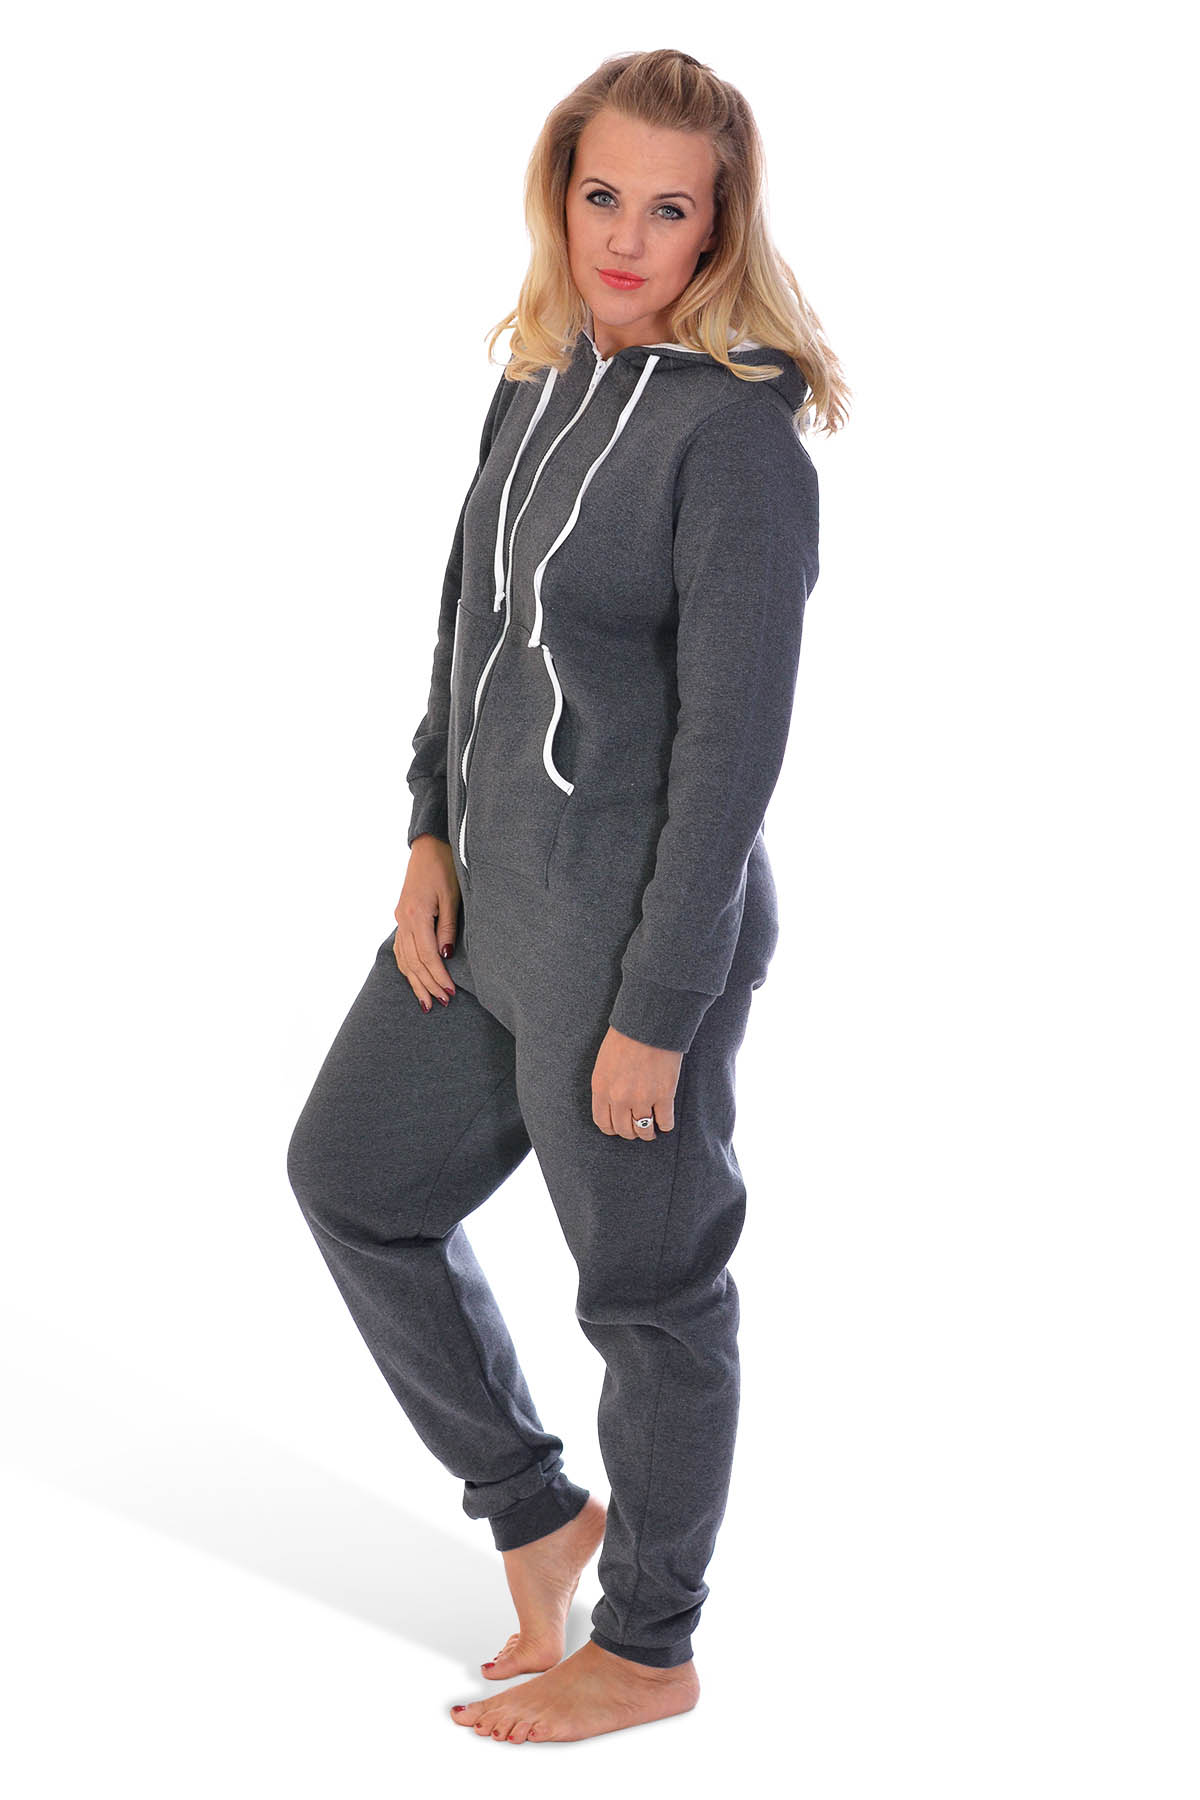 Mens Ladies Plus Size Big Plain 1Onesie All In One Hooded Jumpsuit Sizes S- 5XL. Brand New. $ to $ Buy It Now +$ shipping. Polyester Everyday Plus Size Onesie for Women. Onesie Plus Everyday 2X Sleepwear & Robes for Women. Microfleece Regular Size Sleepwear & Robes Onesie for Women.